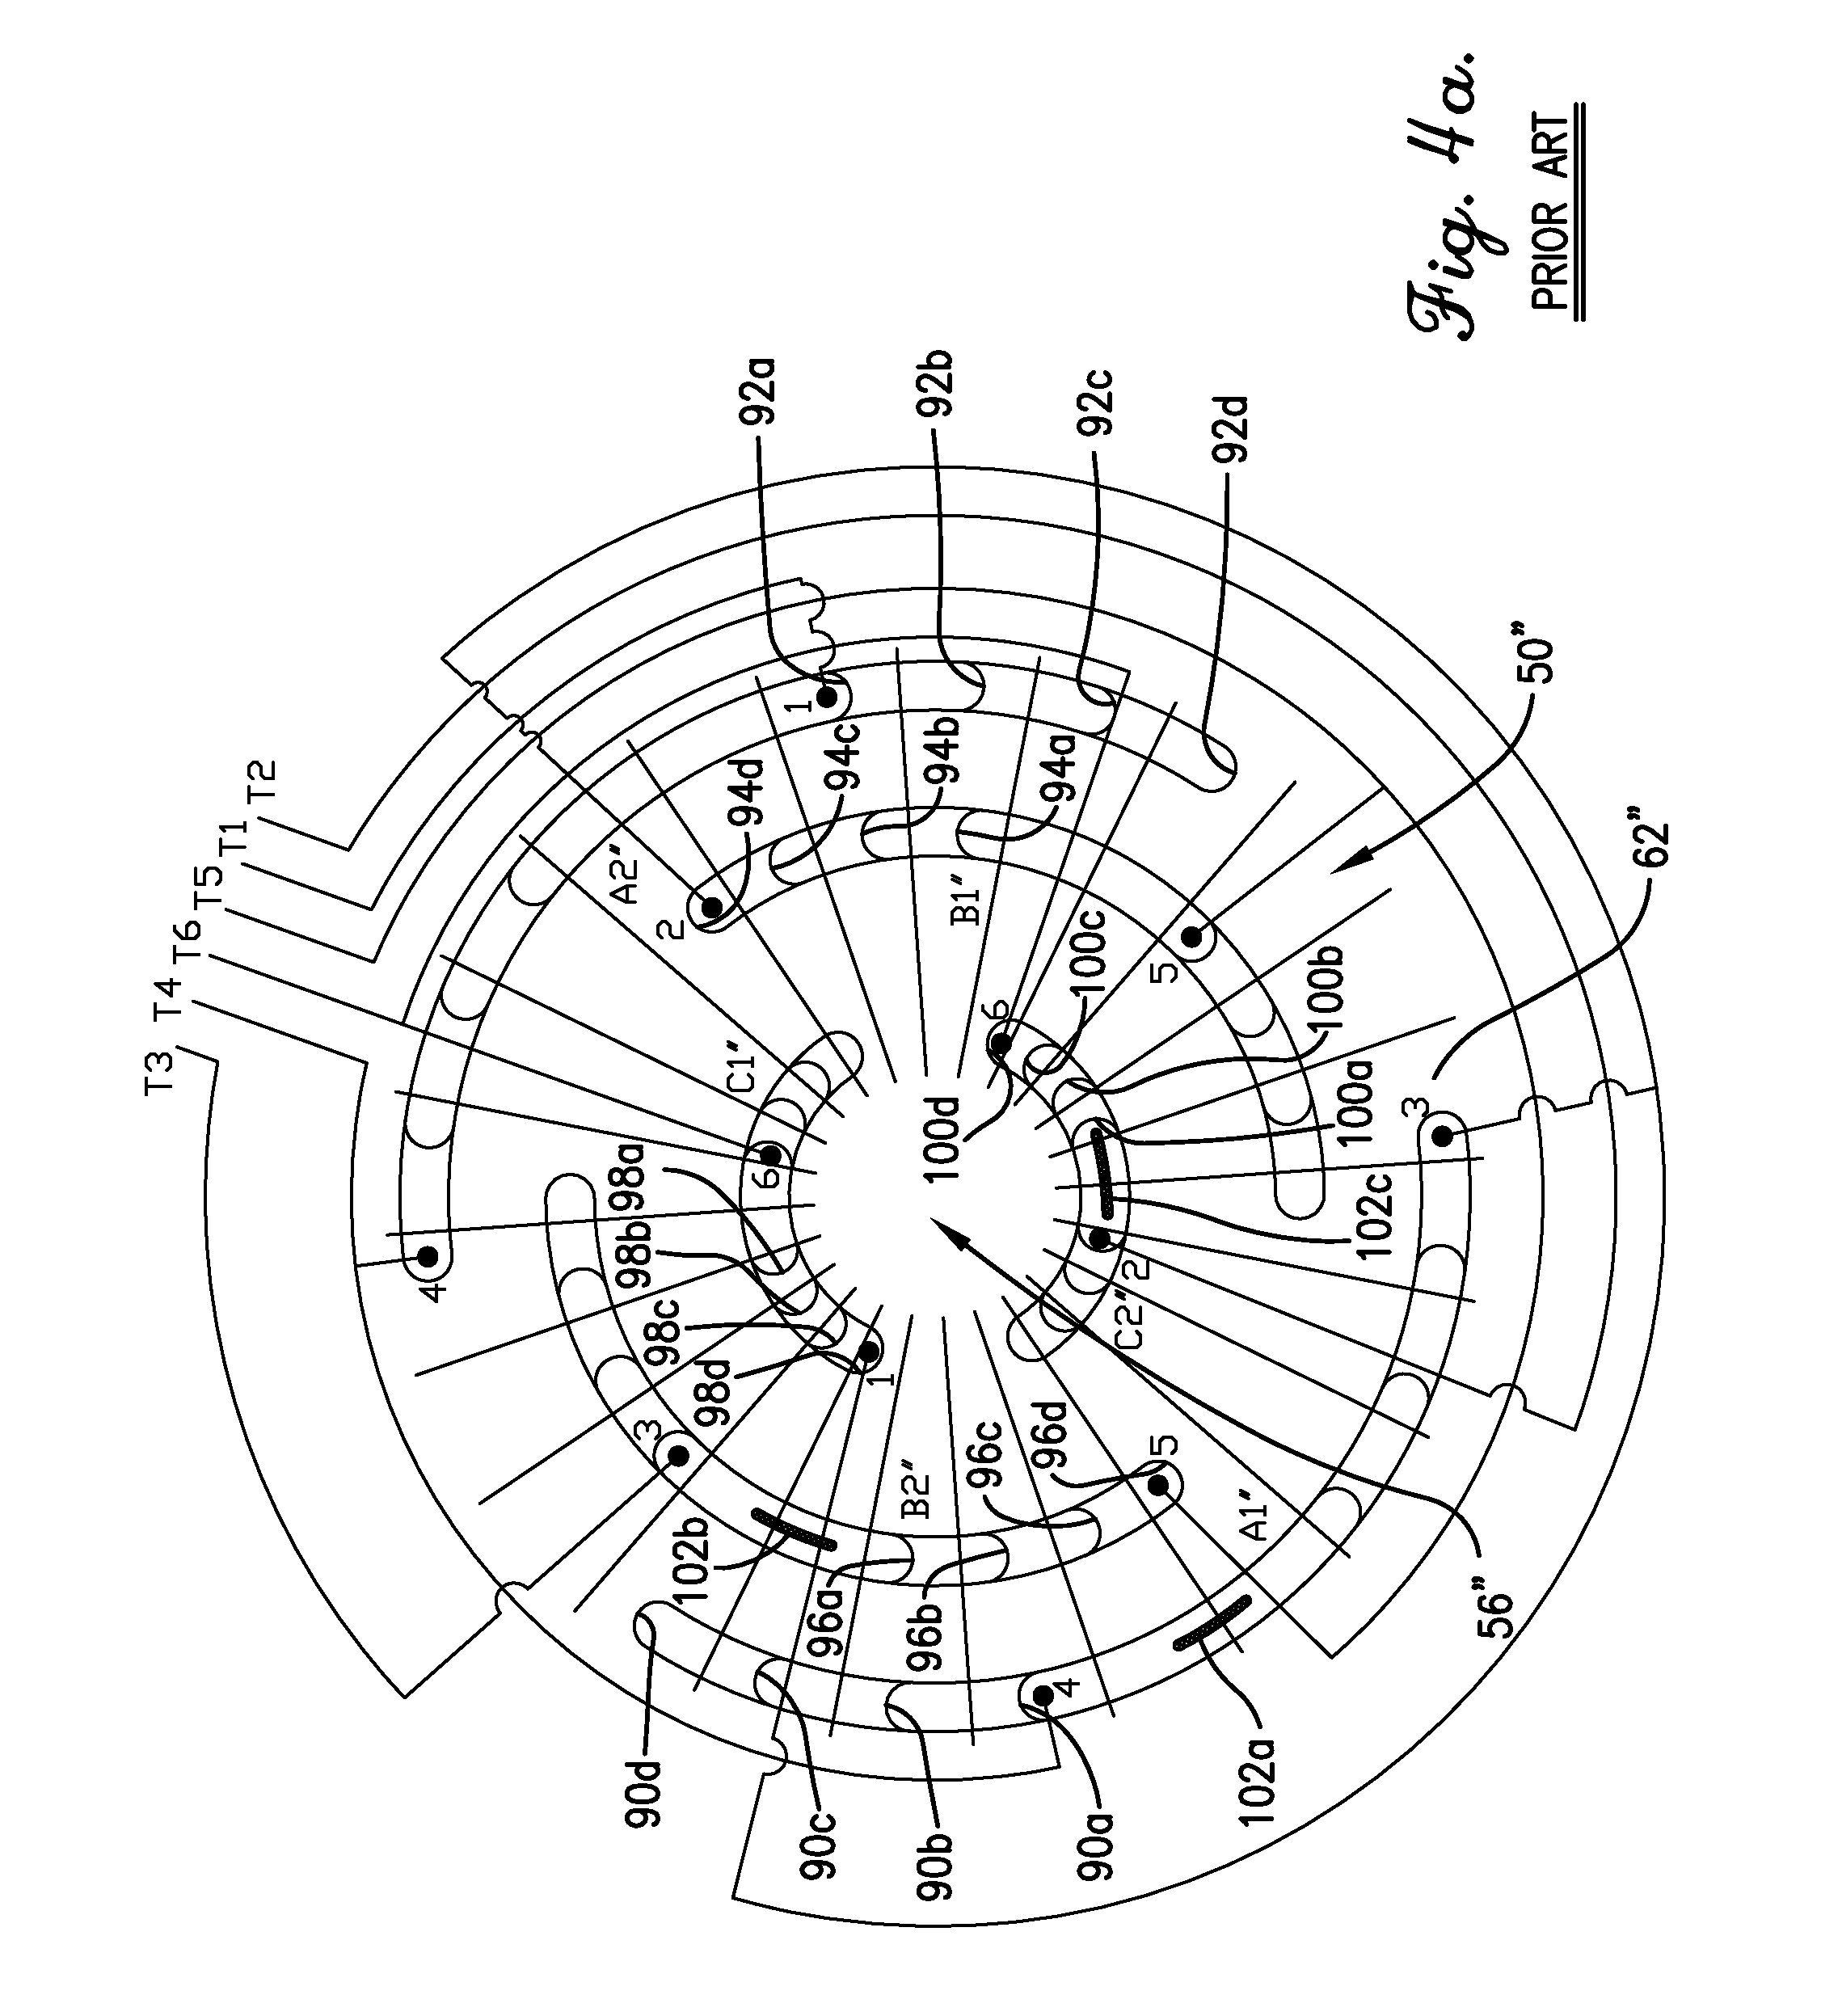 Desk Fan Motor Wiring Diagram Phase Induction Star Delta Table Connection Images 12 Leads Patent Drawing